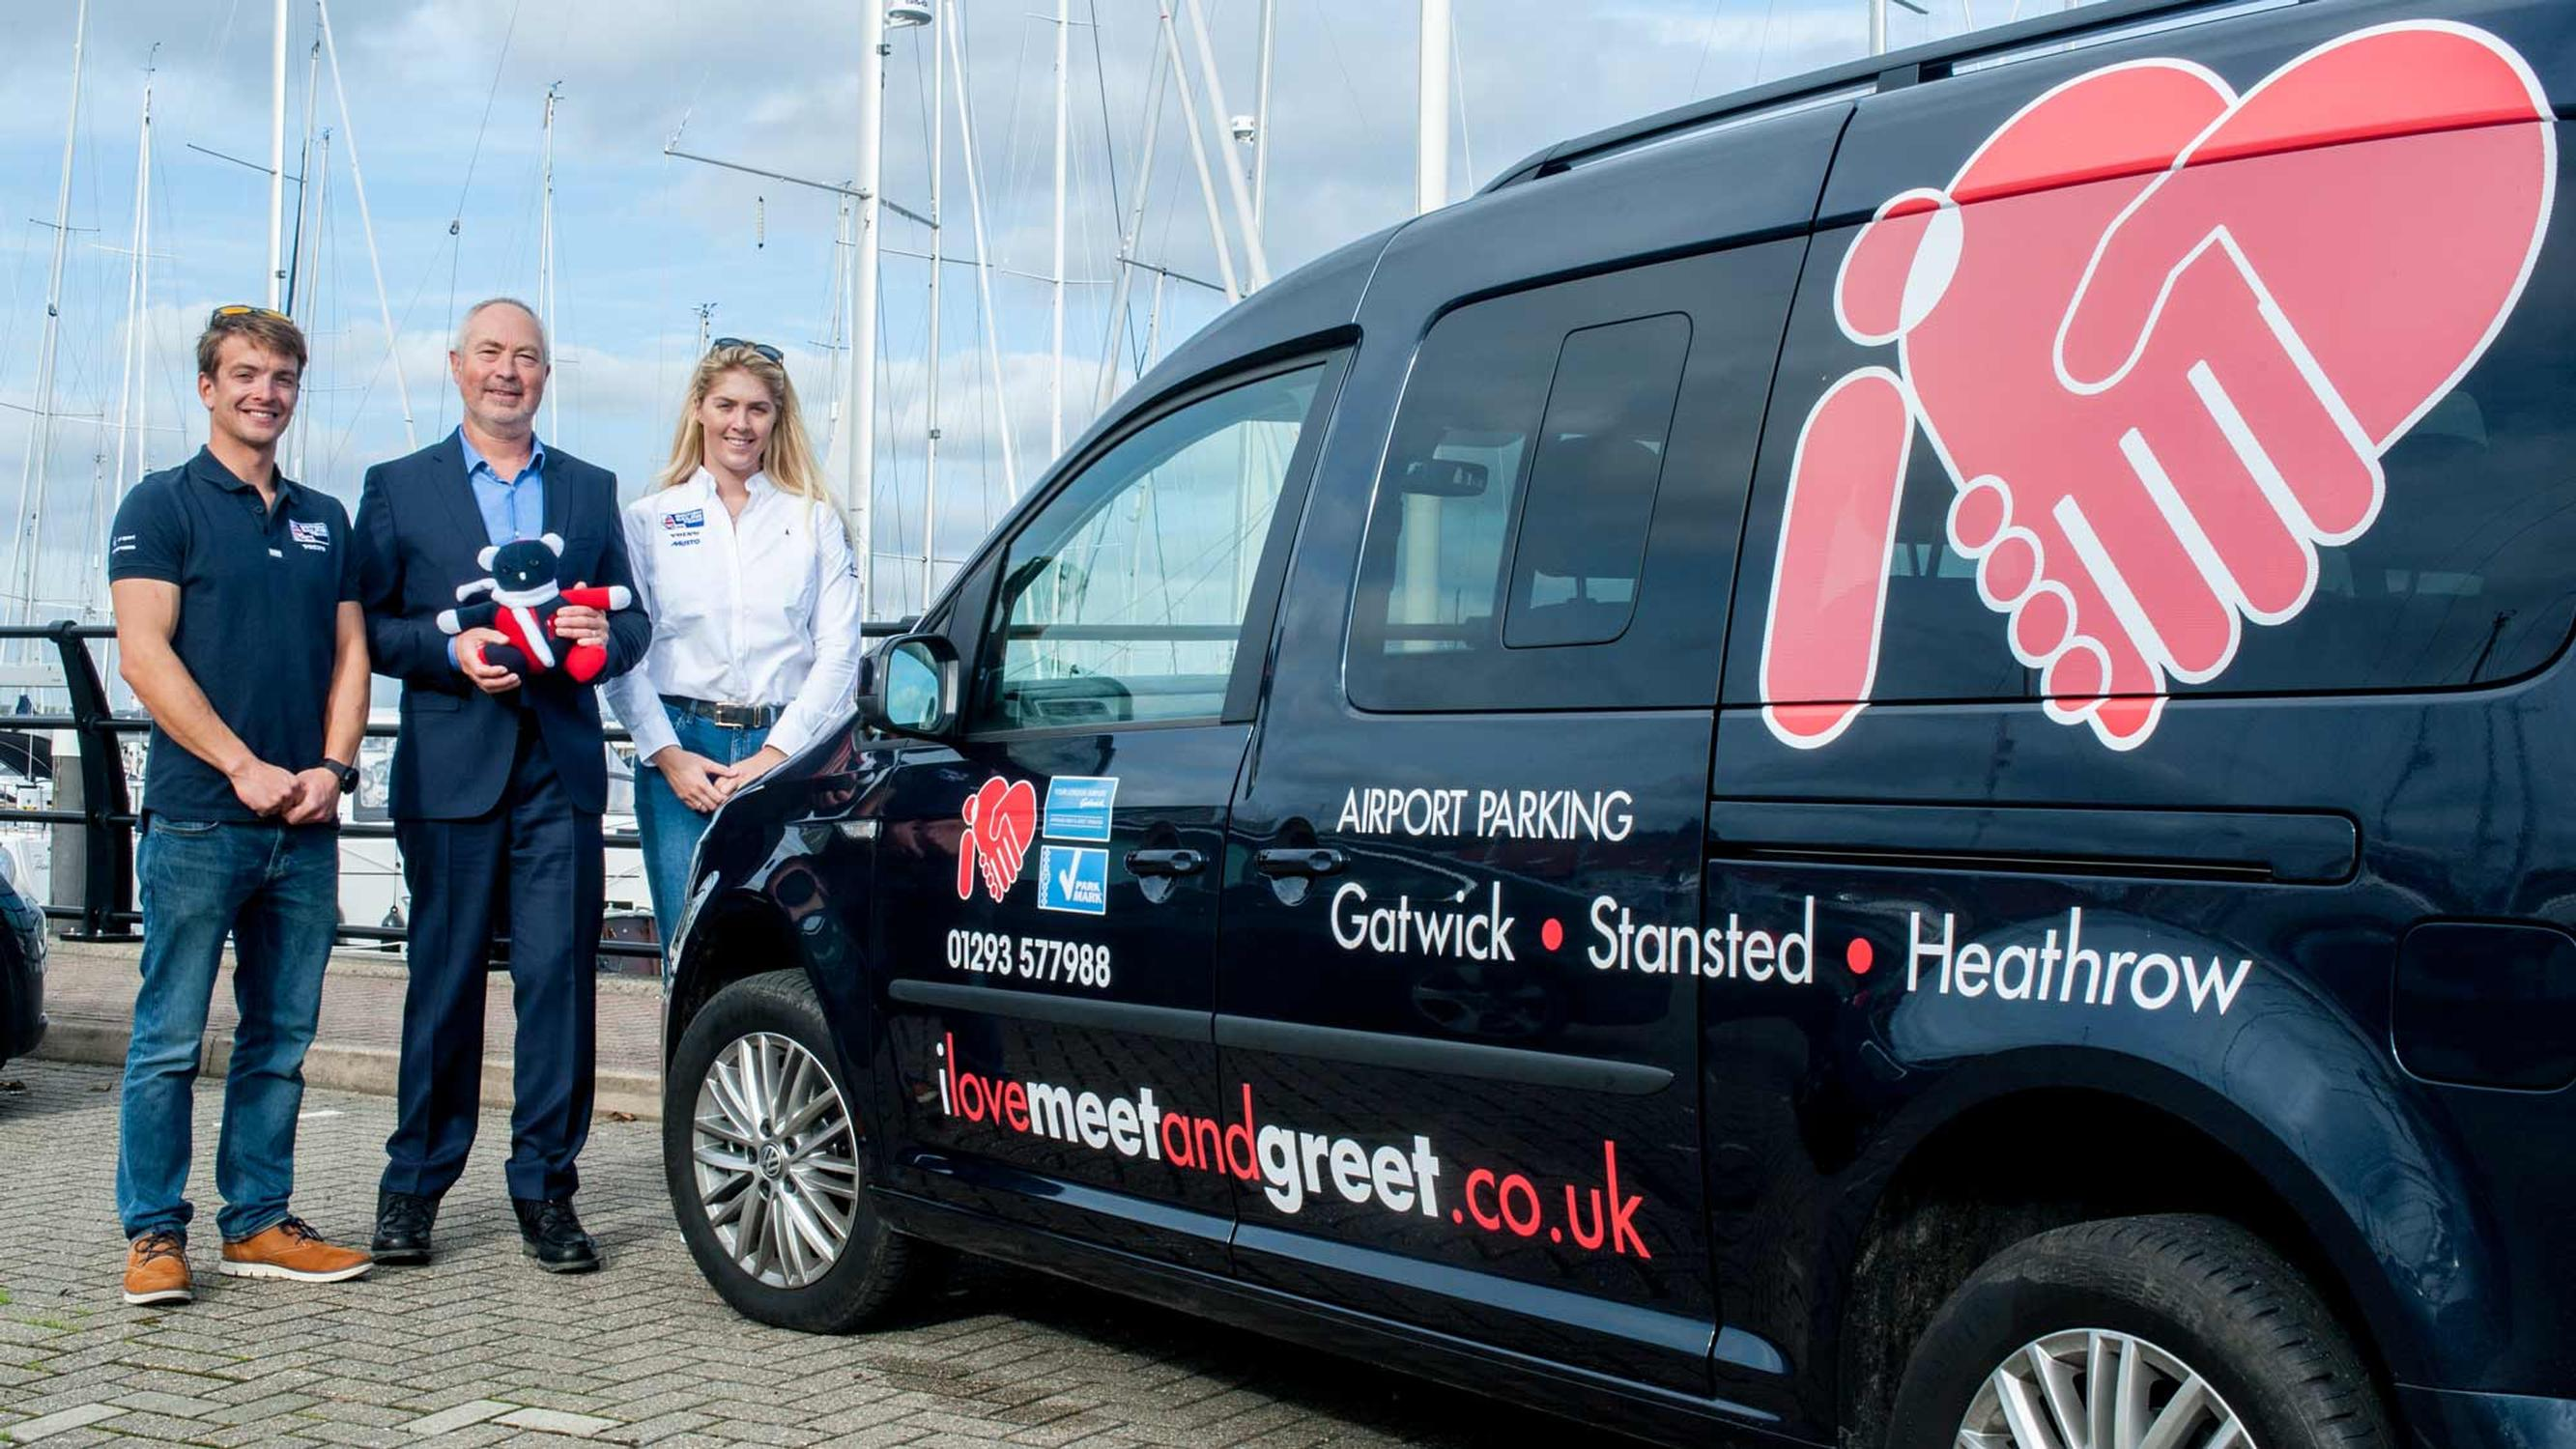 Airport Parking Firm Sponsors Sailing Team